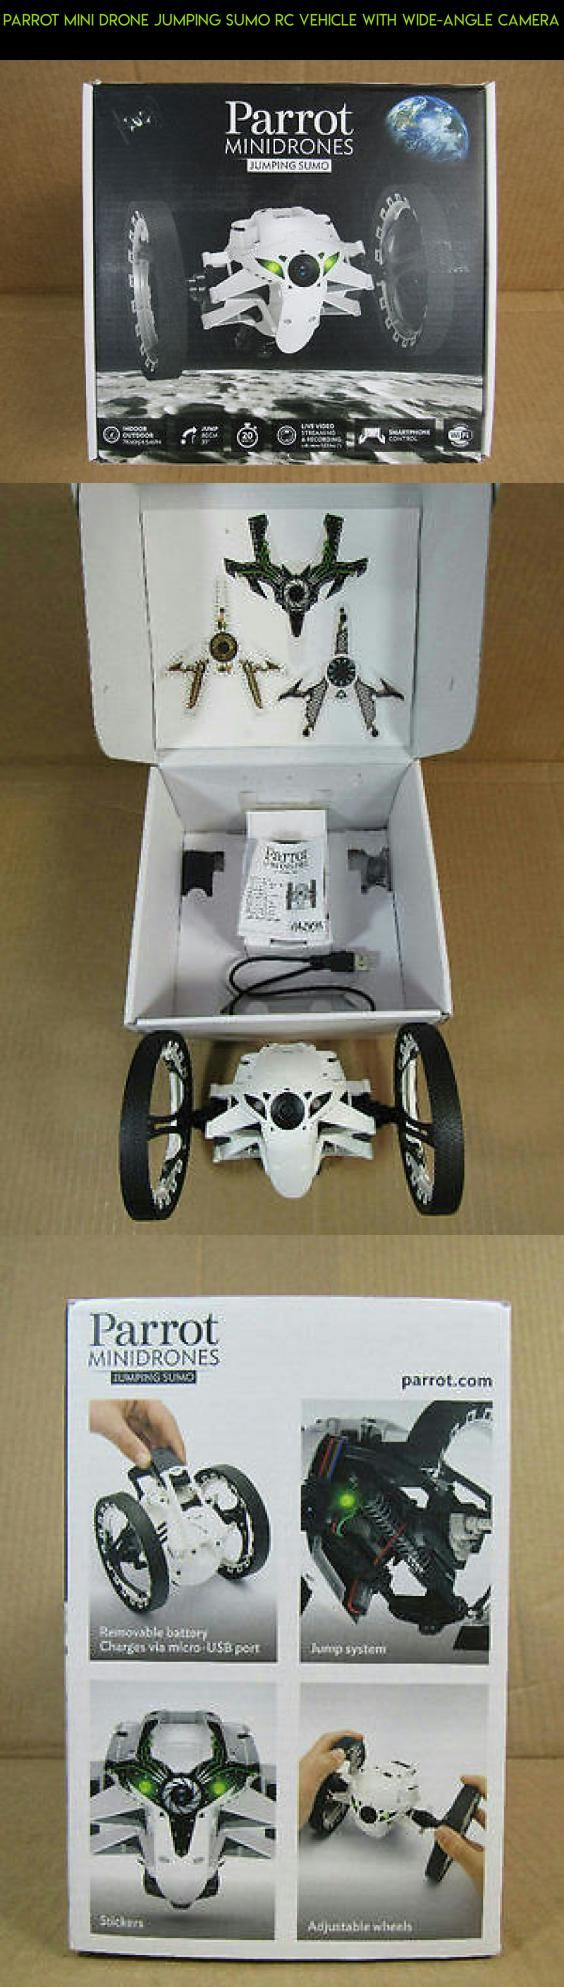 Parrot Mini Drone Jumping Sumo RC Vehicle with Wide-Angle Camera #parrot #drone #camera #kit #shopping #technology #parts #plans #tech #drone #jumping #gadgets #fpv #products #racing